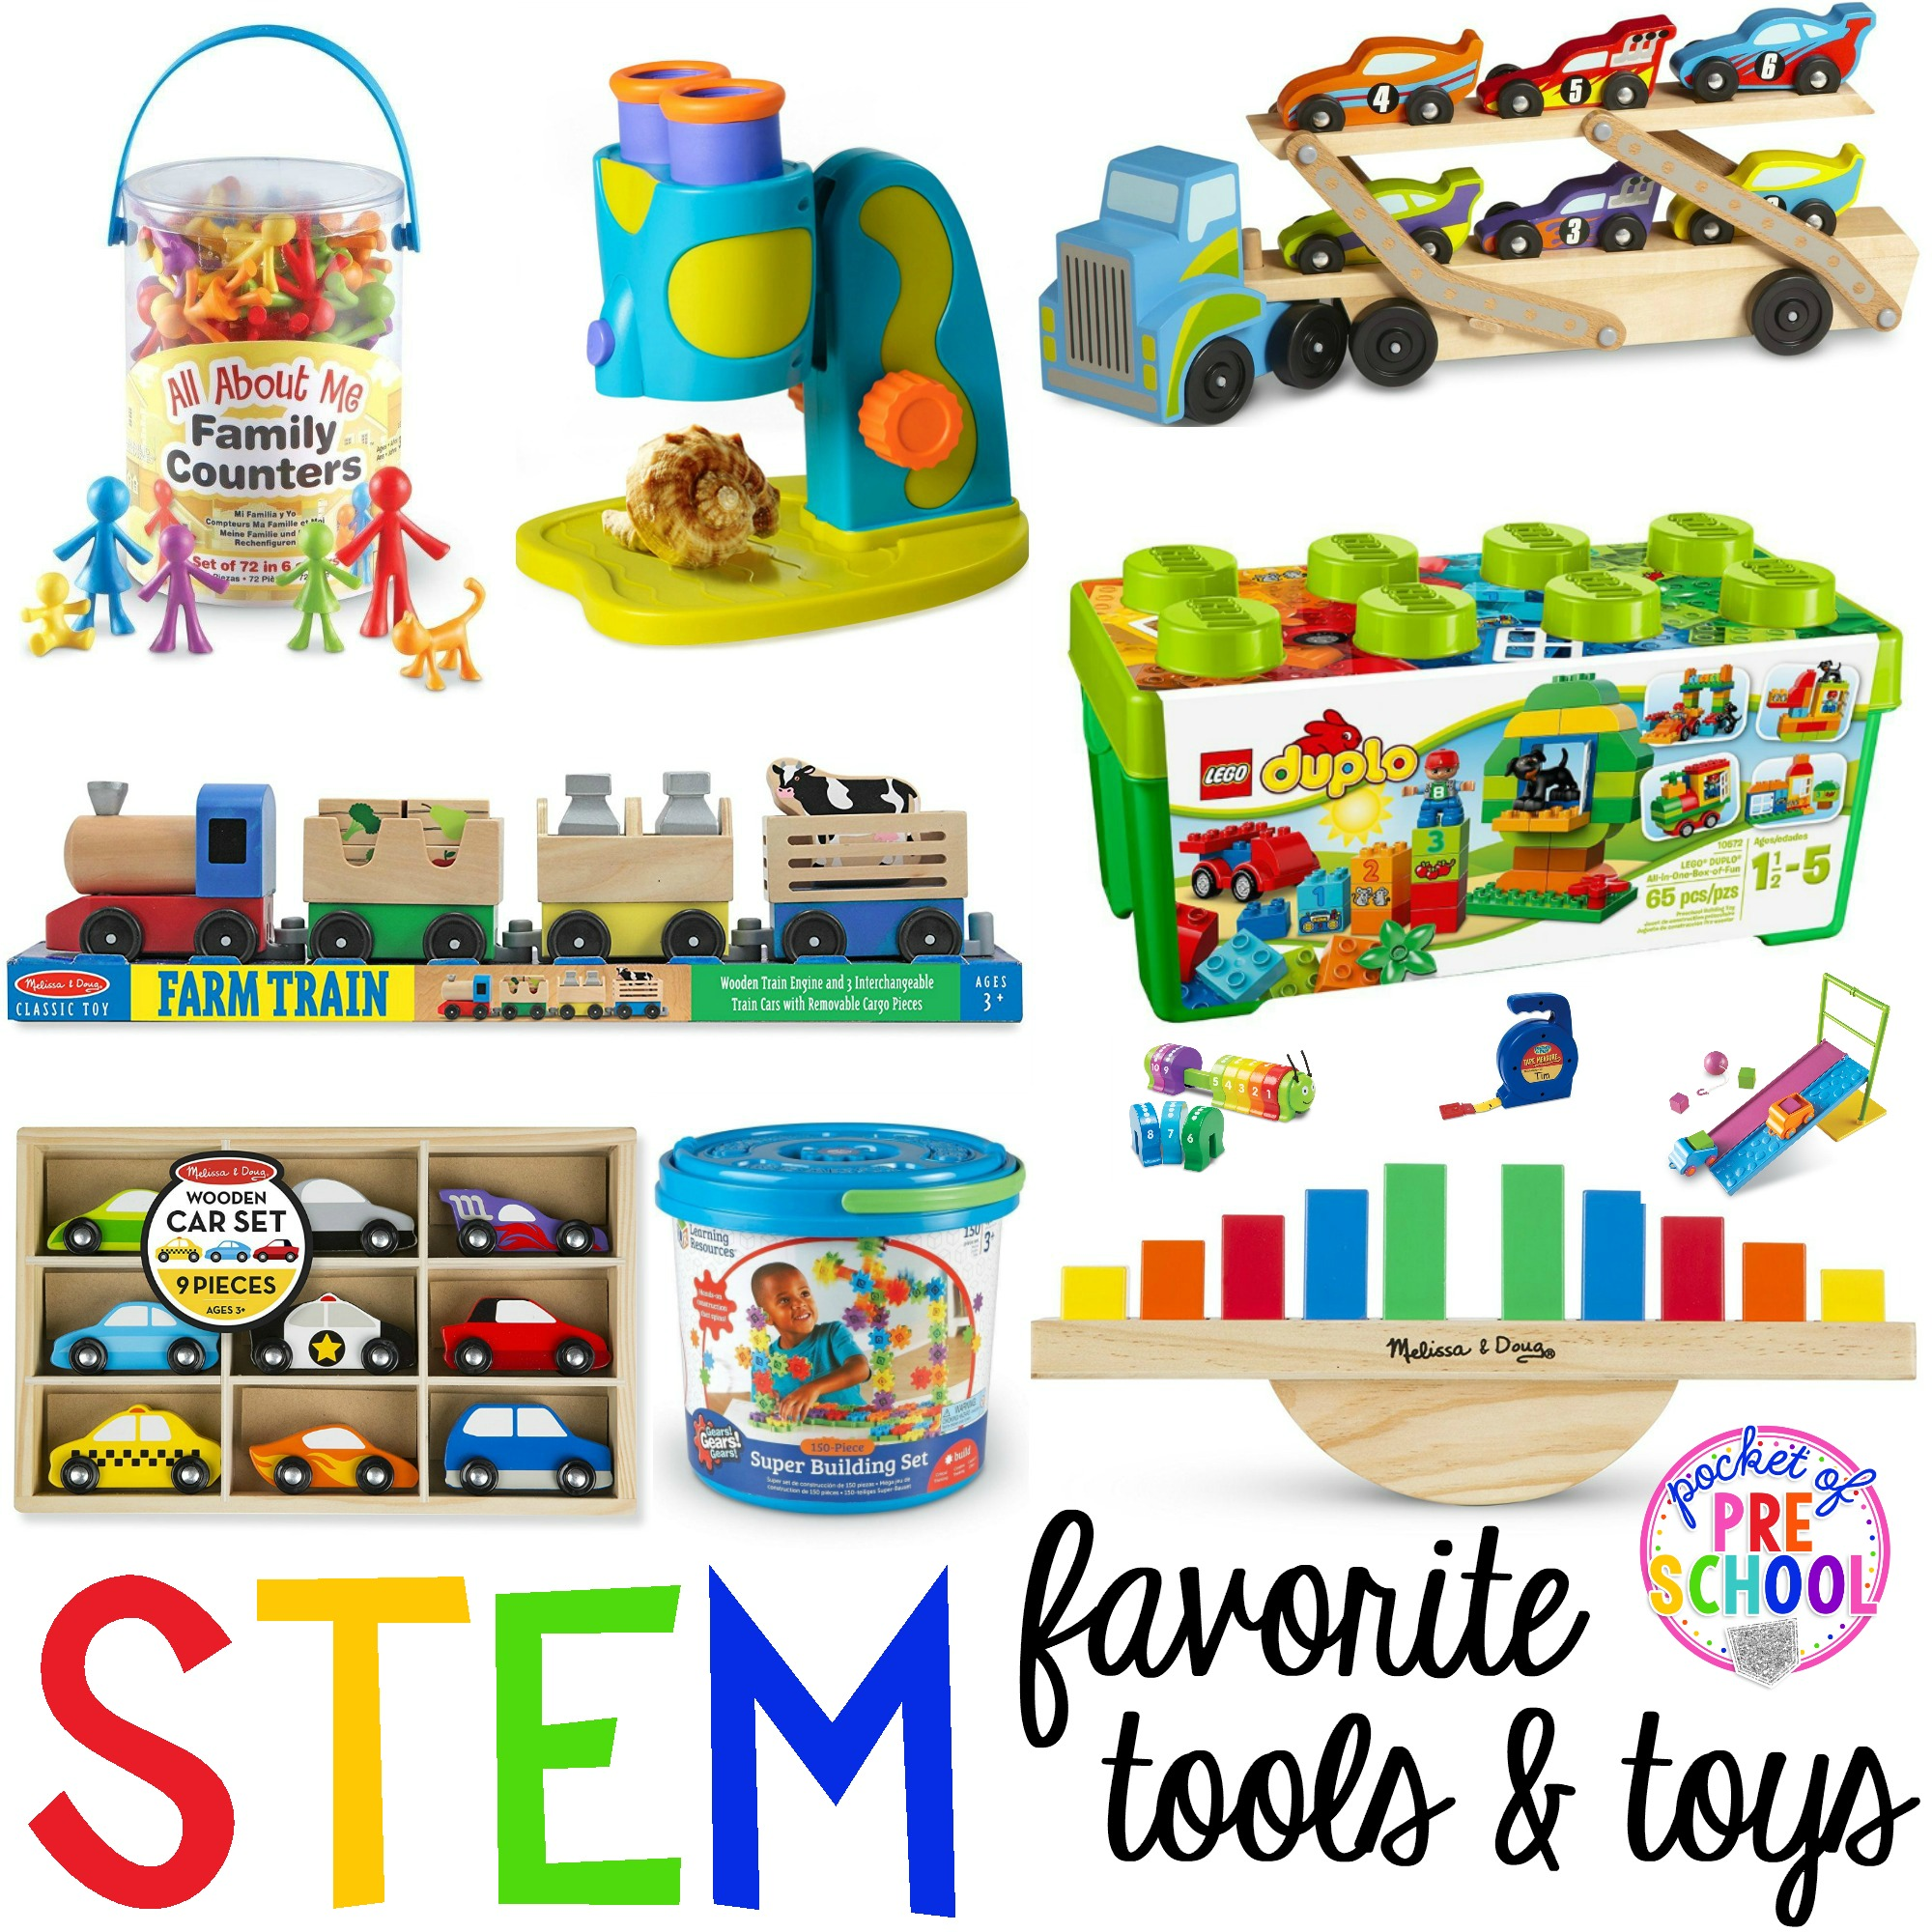 Toys starting with k clipart royalty free library STEM tools and toys for preschool, pre-k, and kindergarten royalty free library